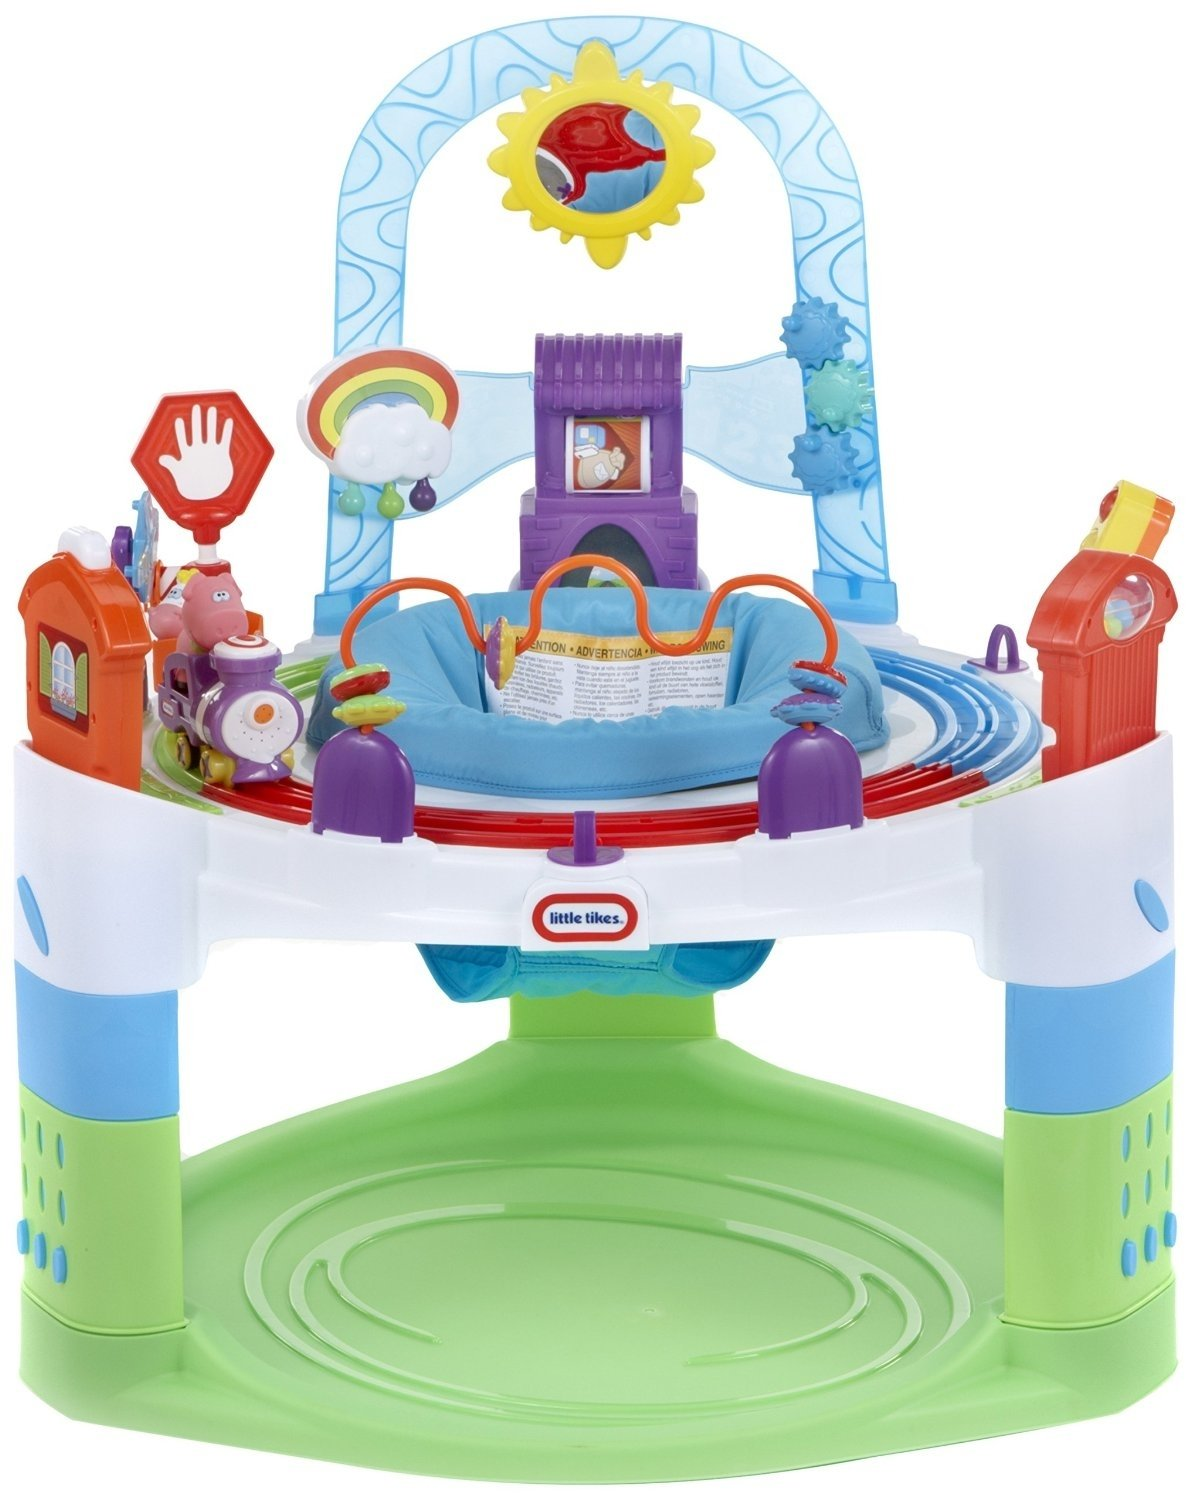 Discover & Learn Activity Center